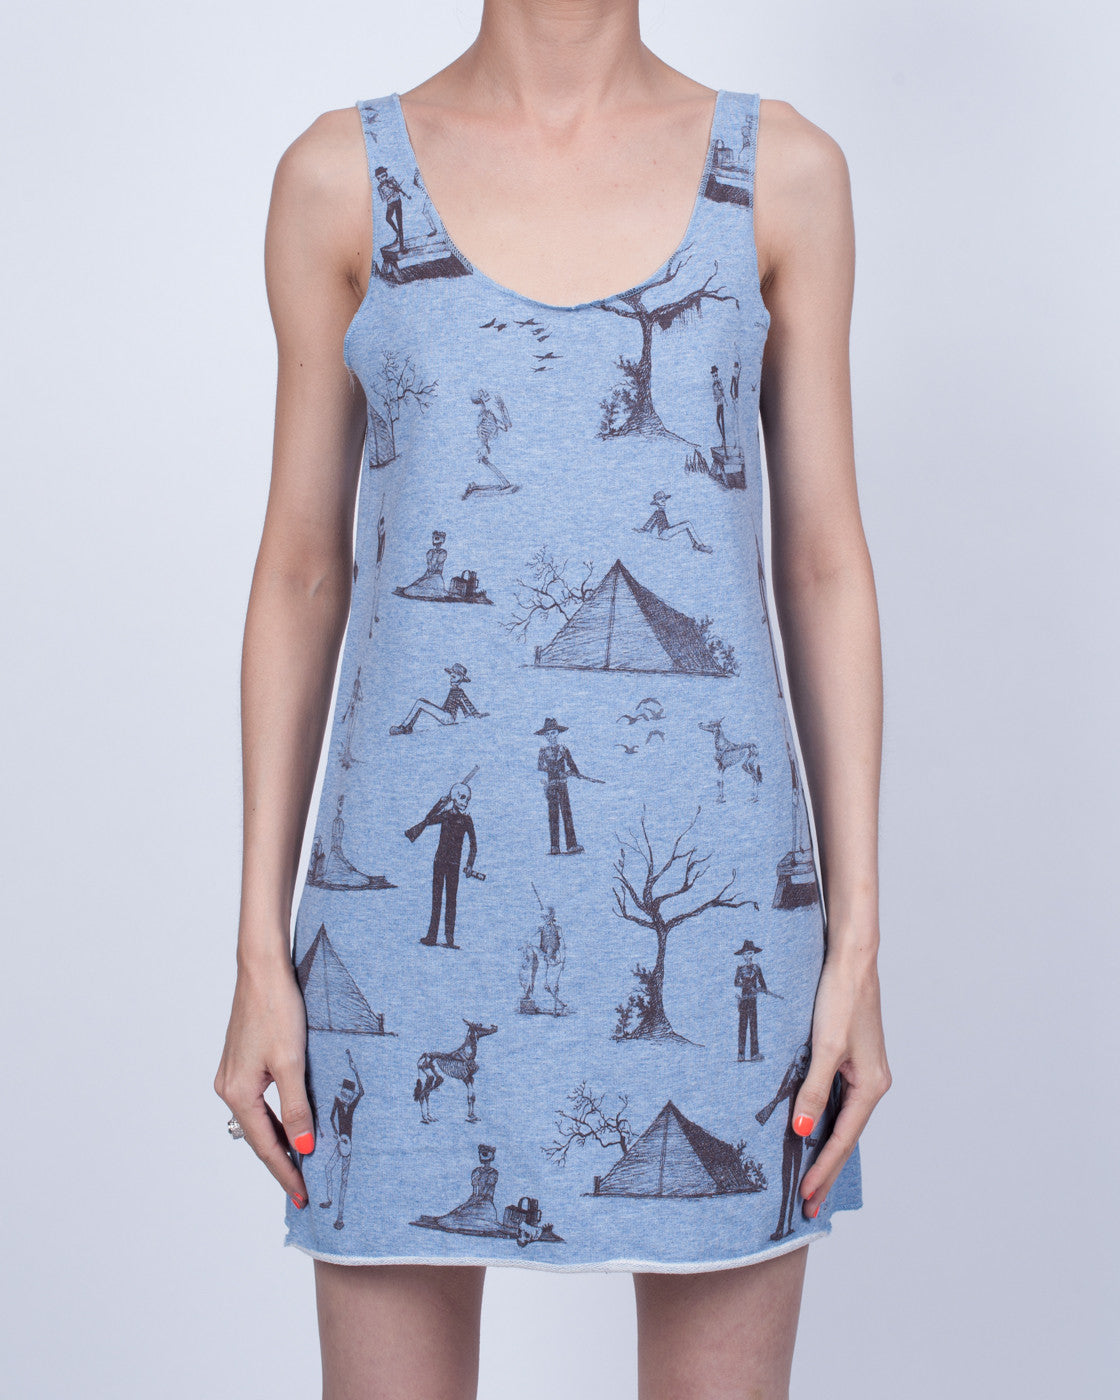 Camping Skeletons Dress Blue